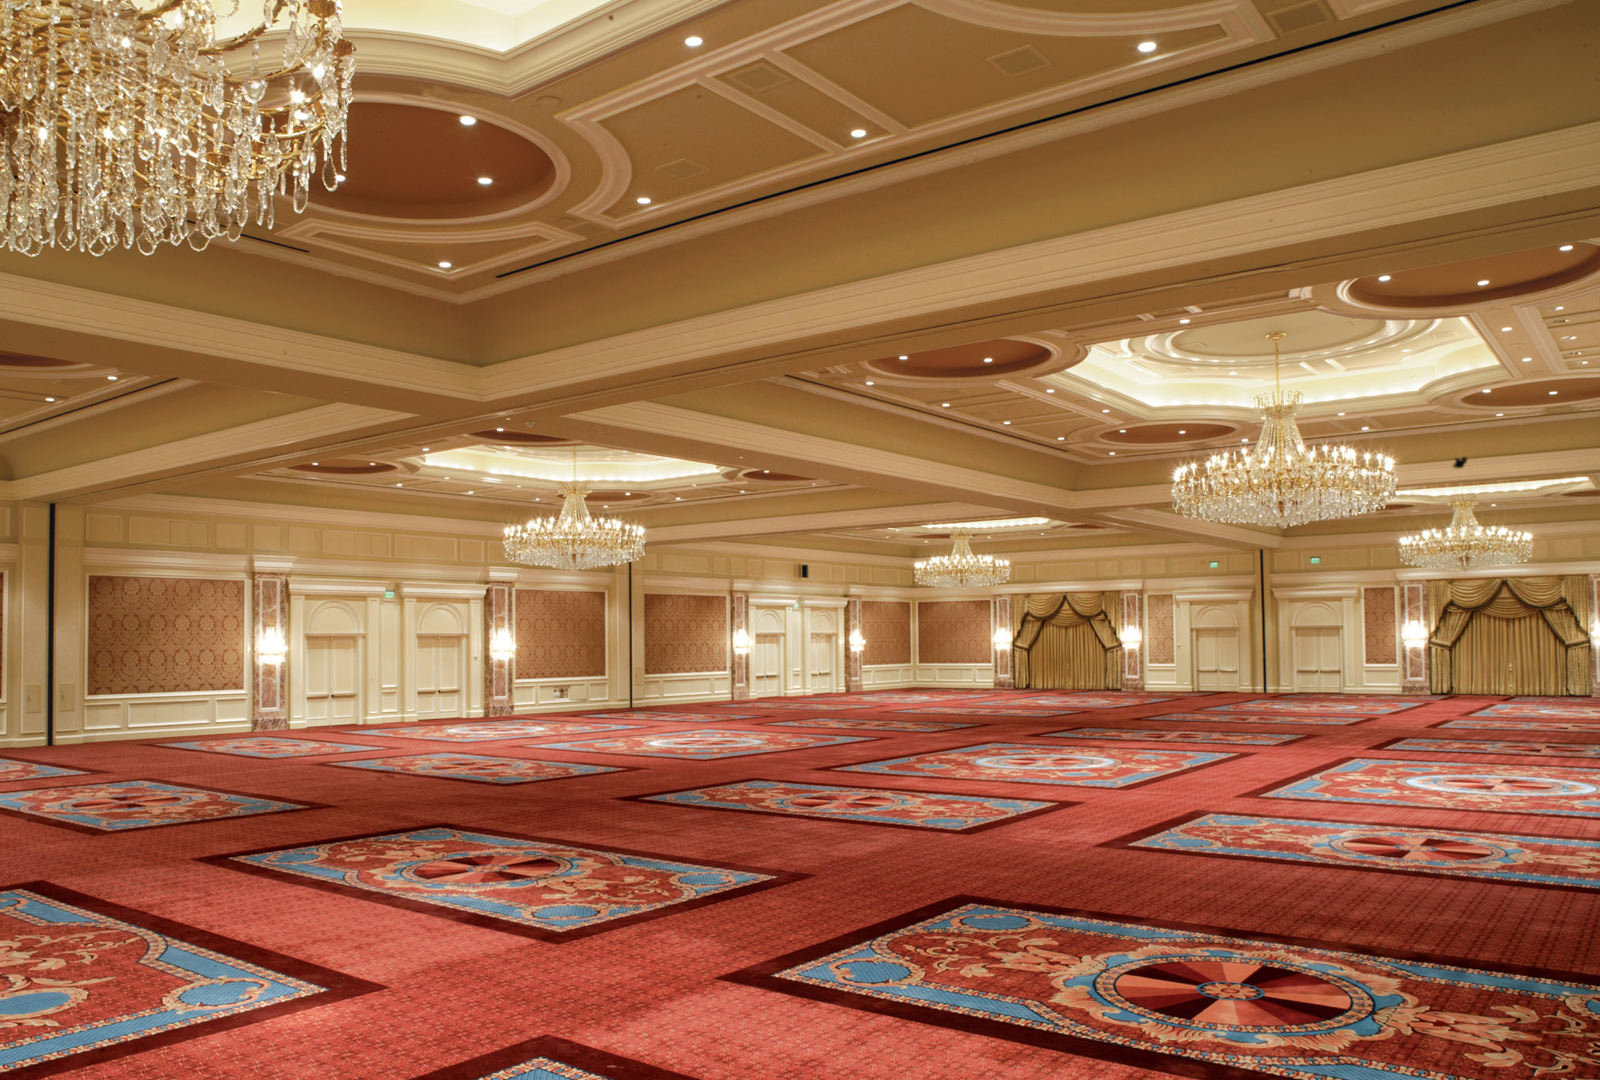 Grand Ballroom conference space for meetings and events on the first floor of The Grand America Hotel